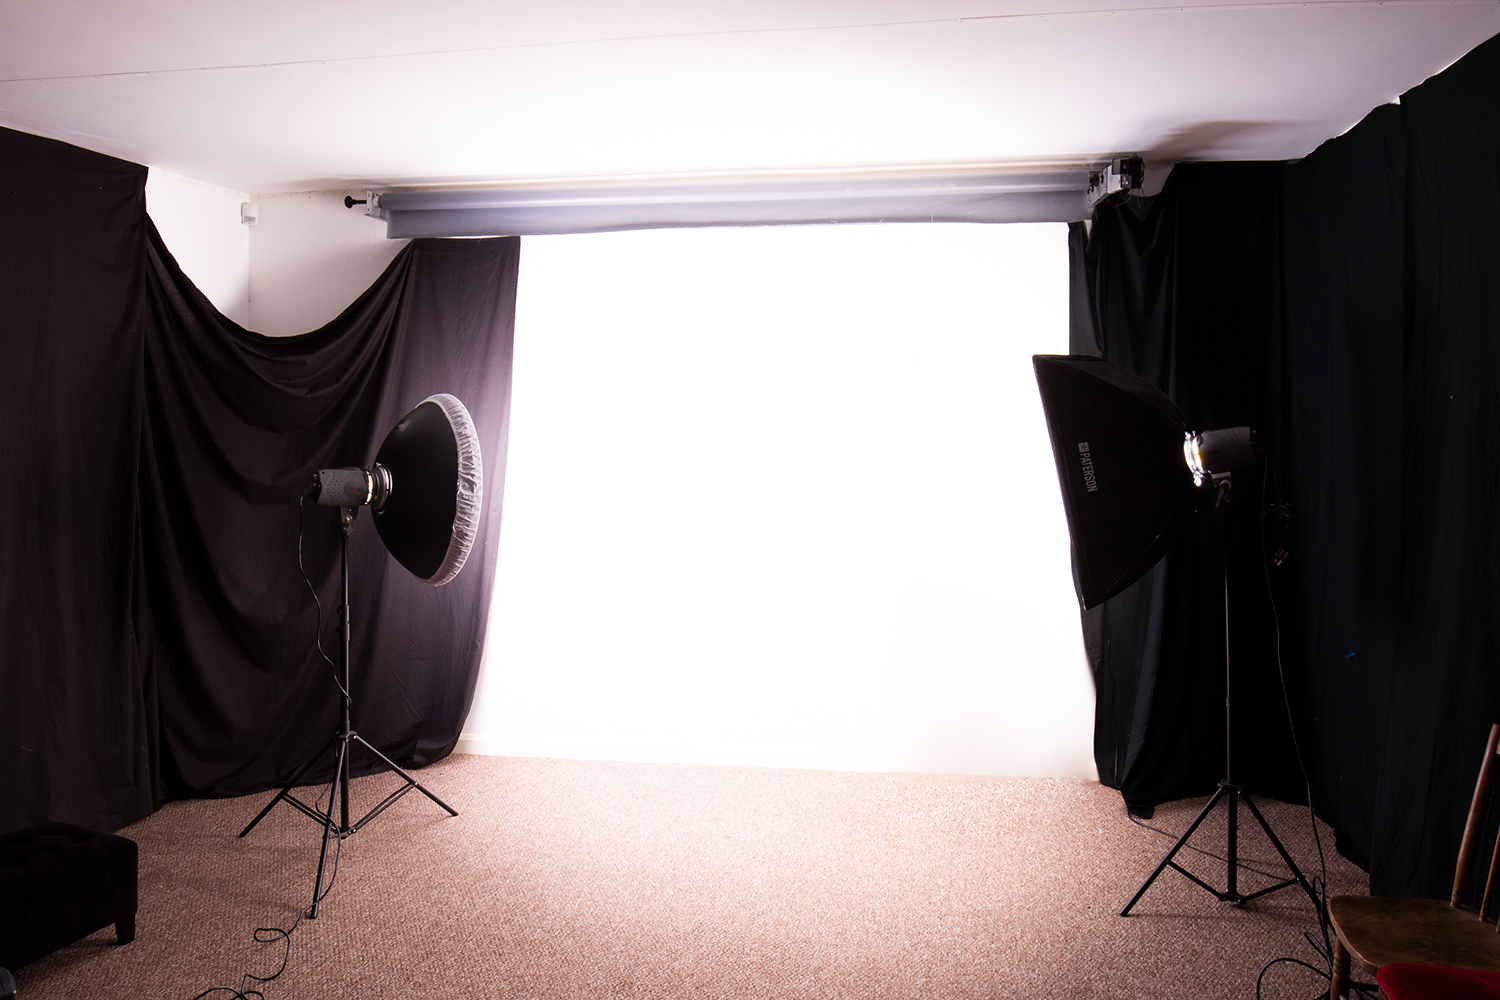 Image: When lighting your background, take the time to ensure that it is evenly lit. This will ensur...